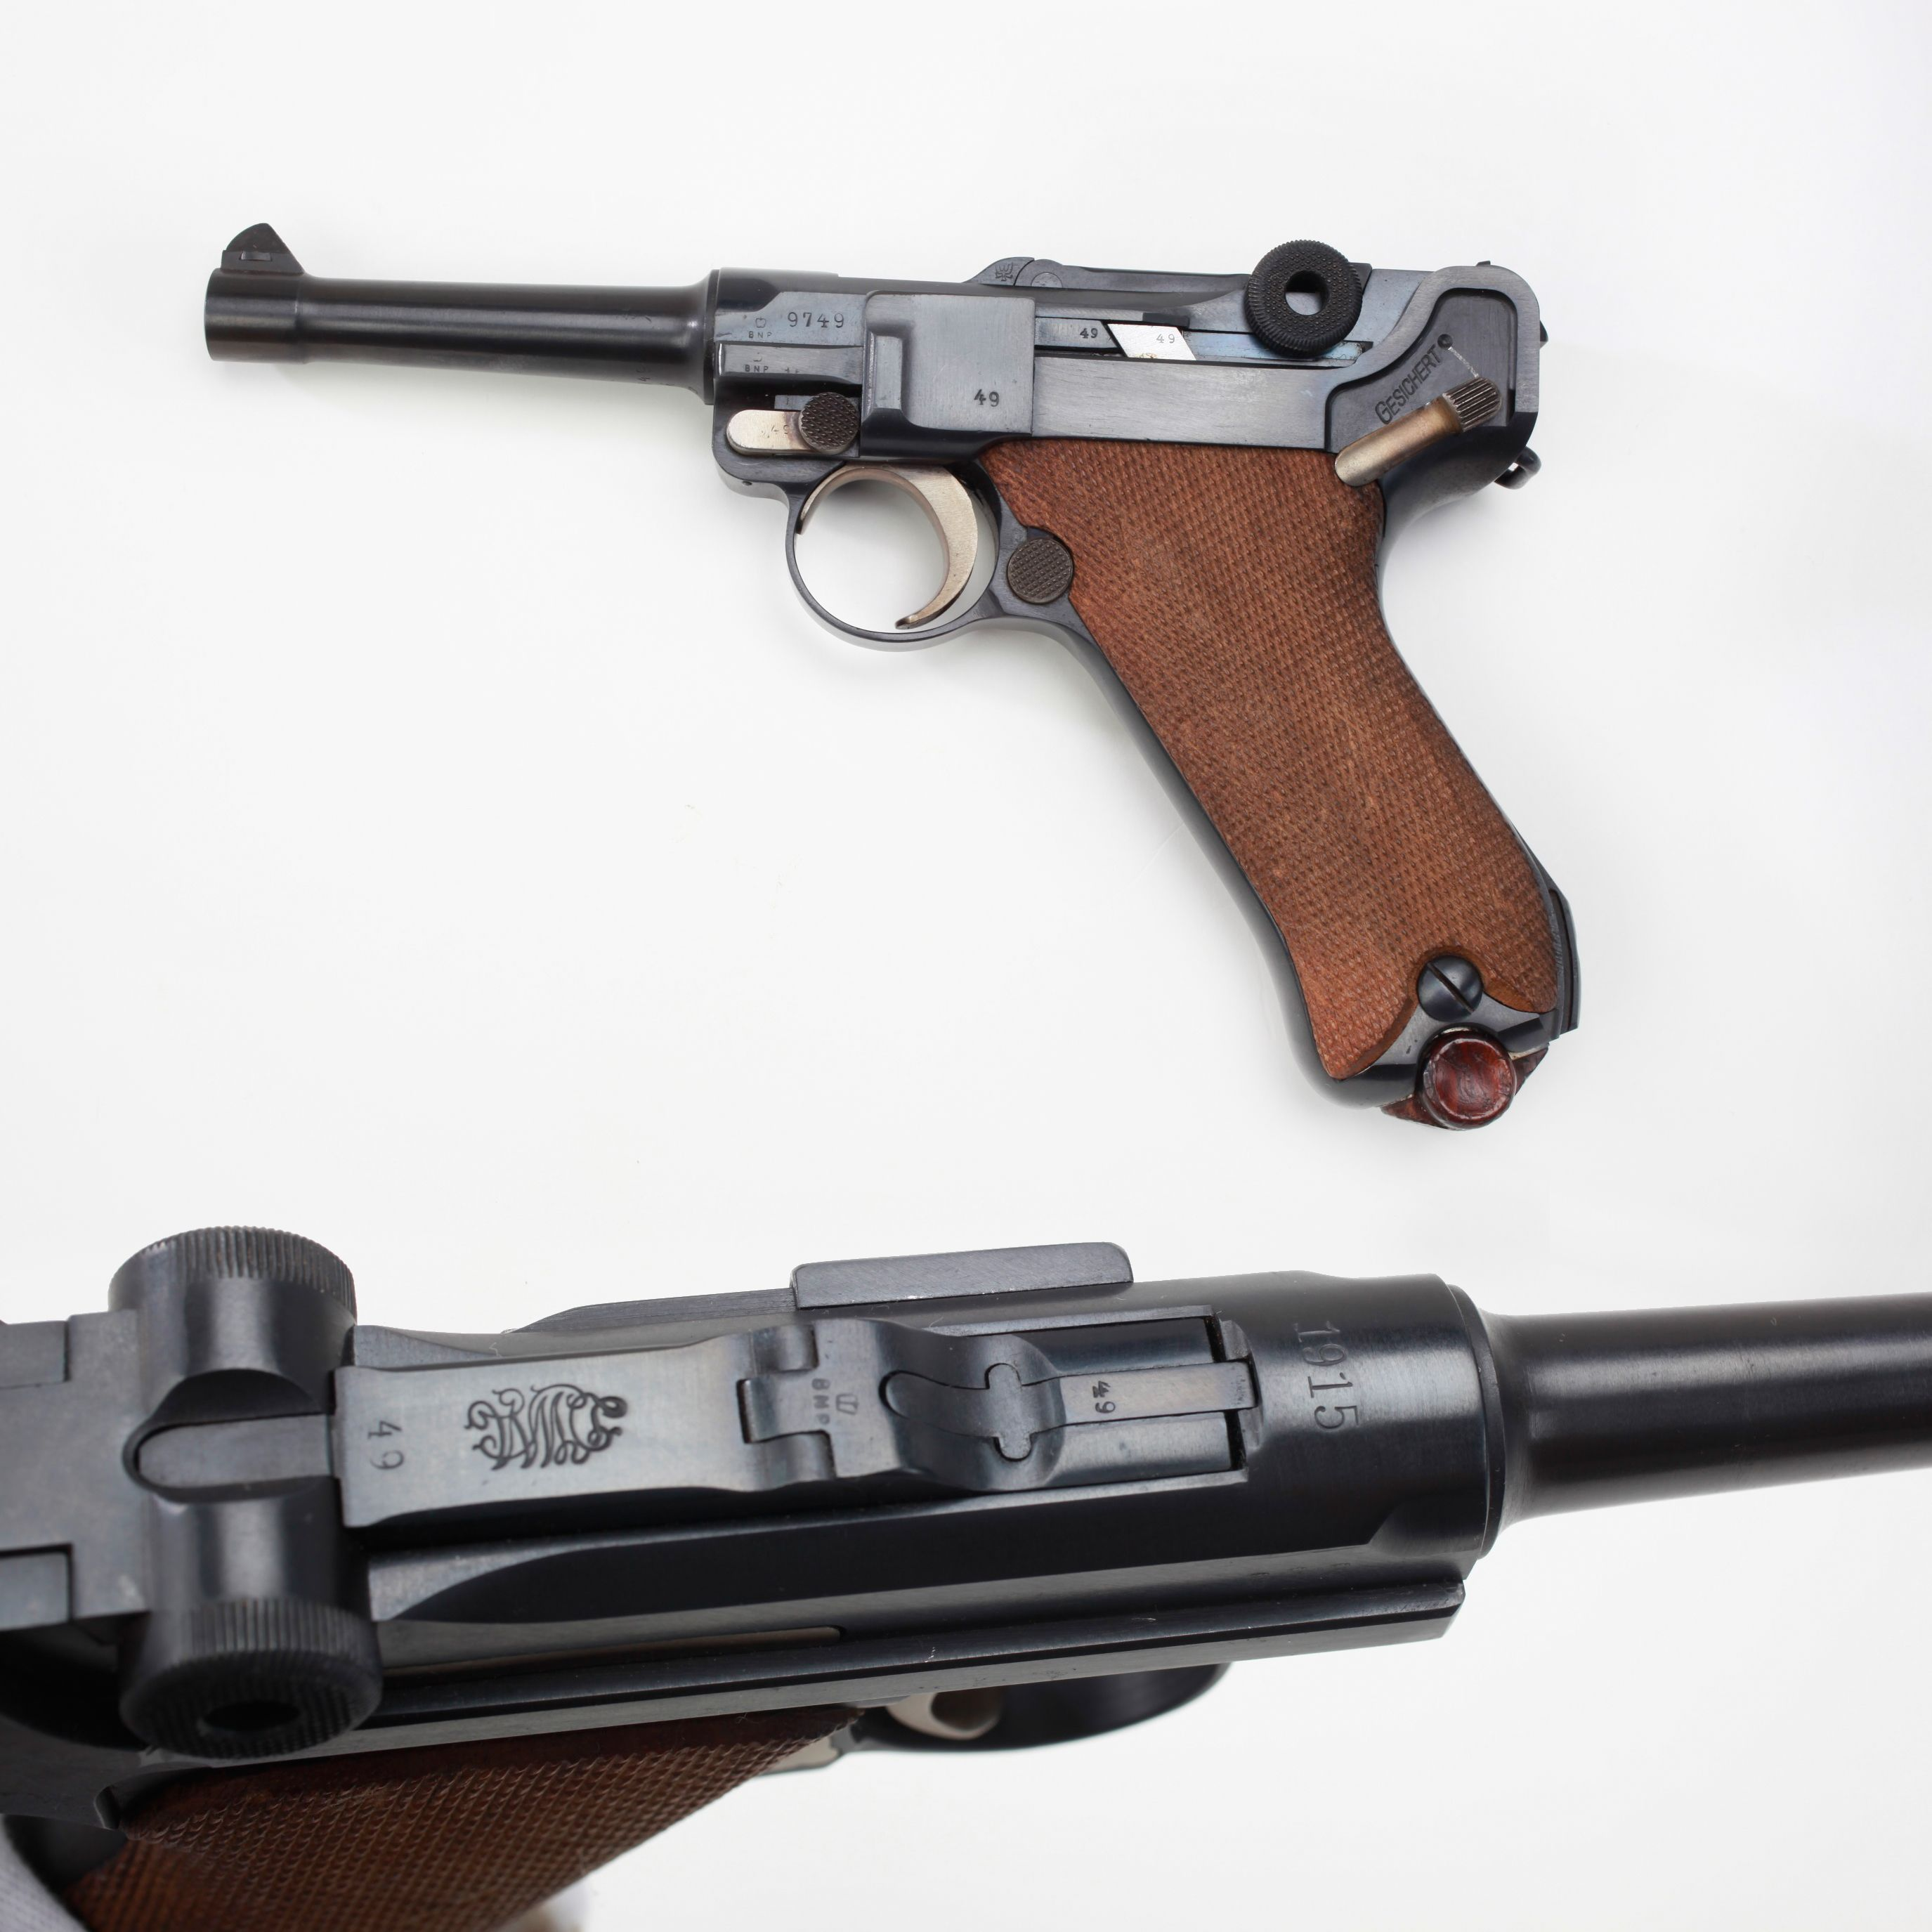 Luger Pistol with a Twist - This 1915-dated 9mm pistol at some point passed through the British ...